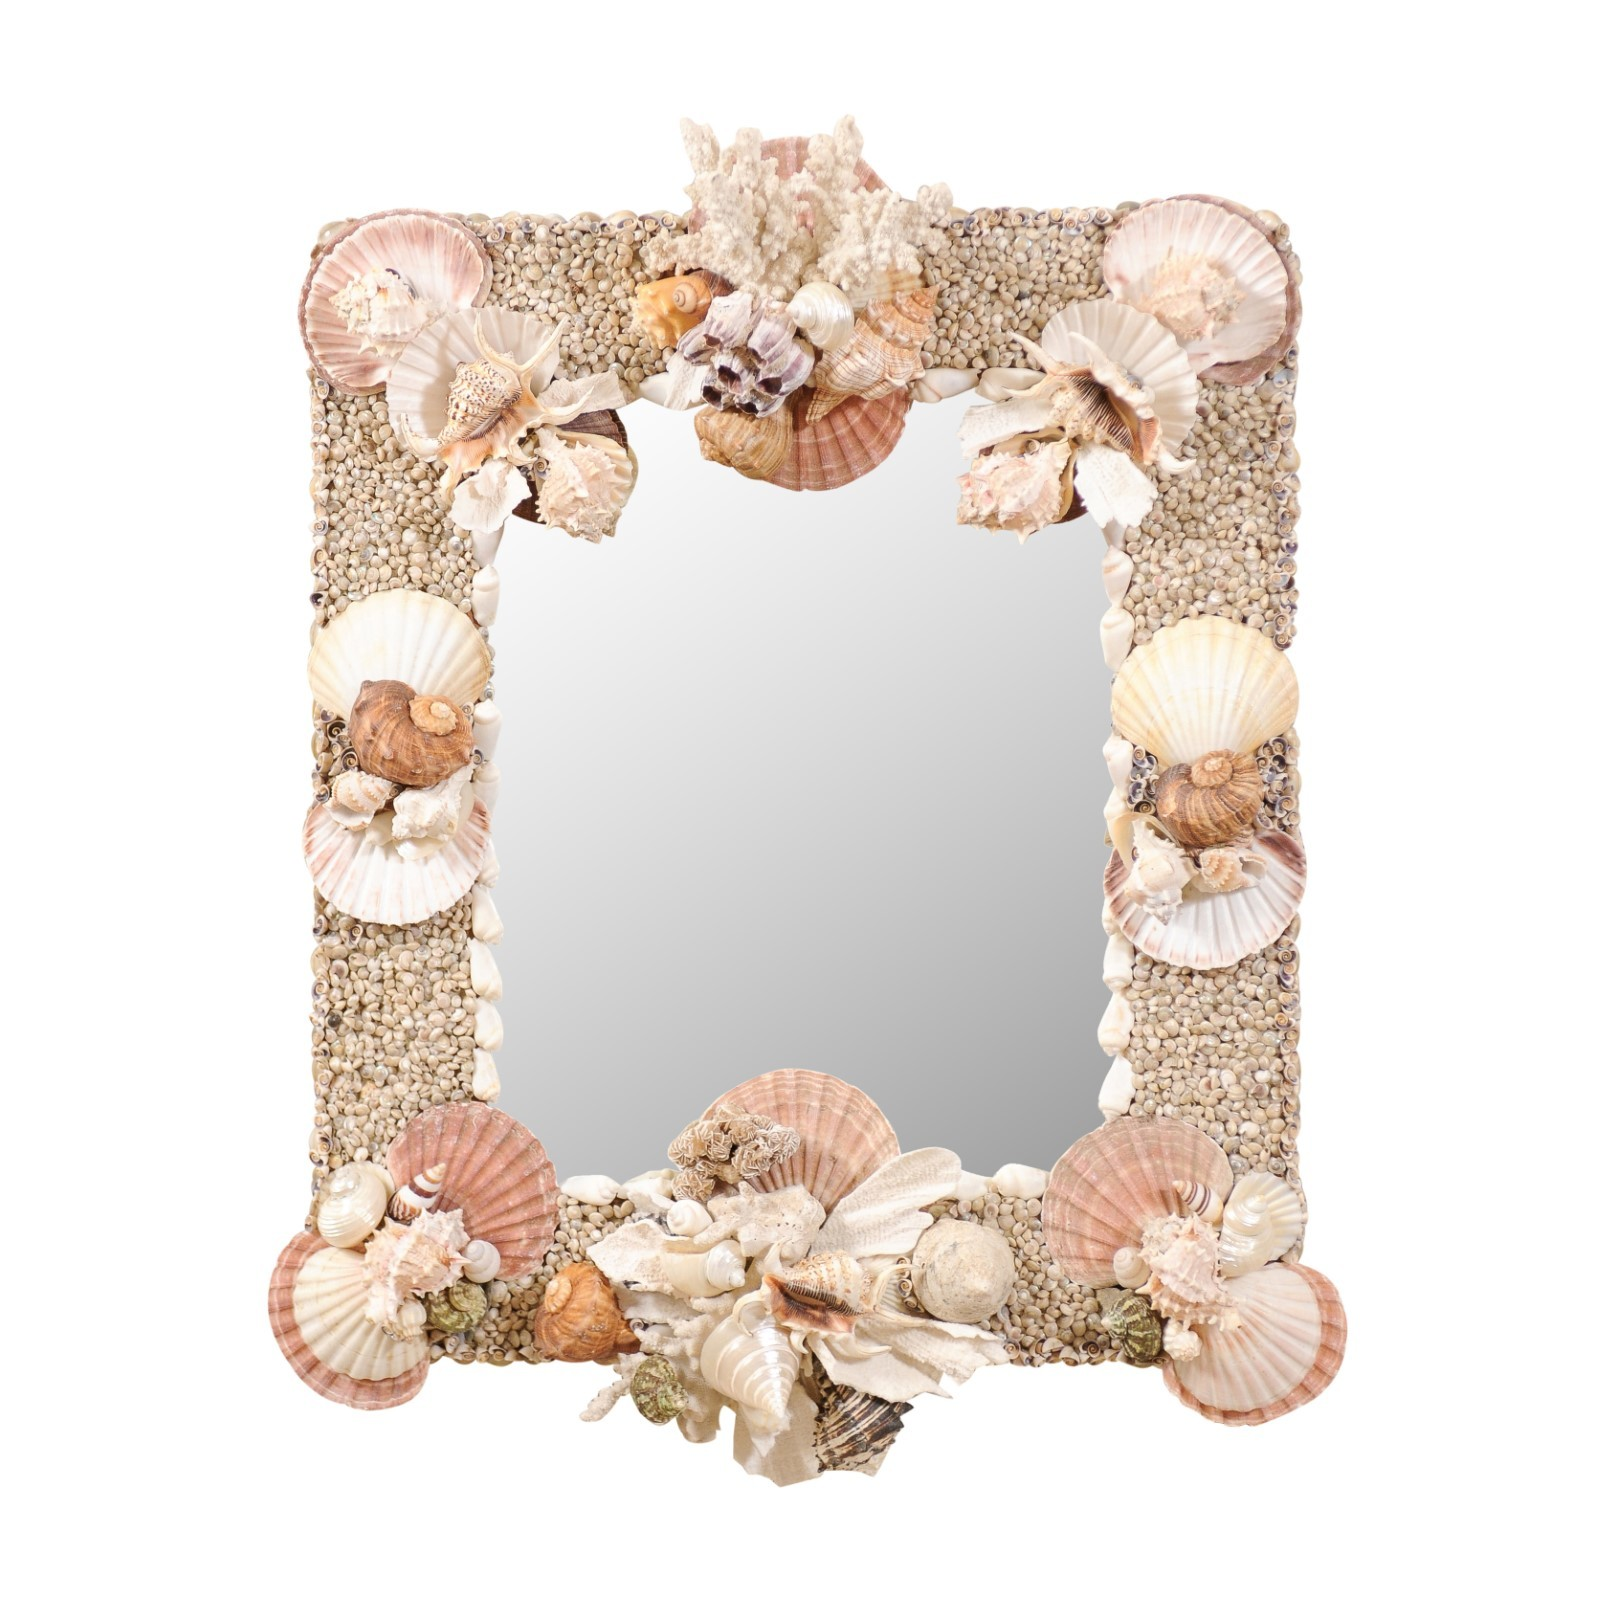 An Elegant Sea Shell & Coral Mirror